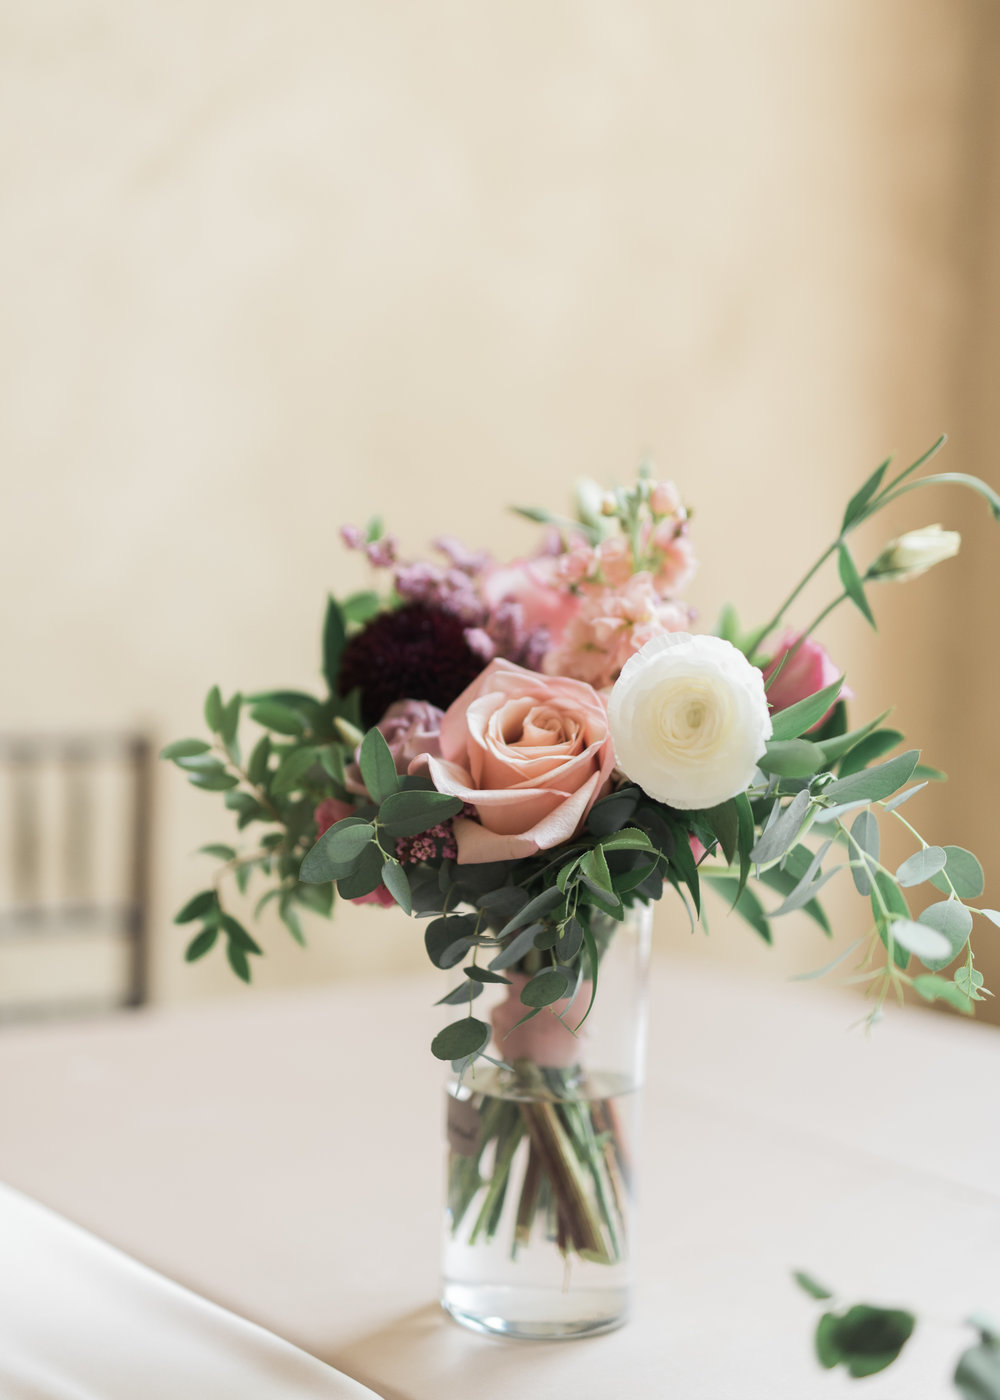 Flowers by Lace and Lilies, bridal bouquet, blush bridesmaid dresses, military wedding, blush flowers, burgundy flowers, mountain wedding, wedding photography, wedding flowers, bridal party, reception flowers, table centerpieces, tall centerpieces